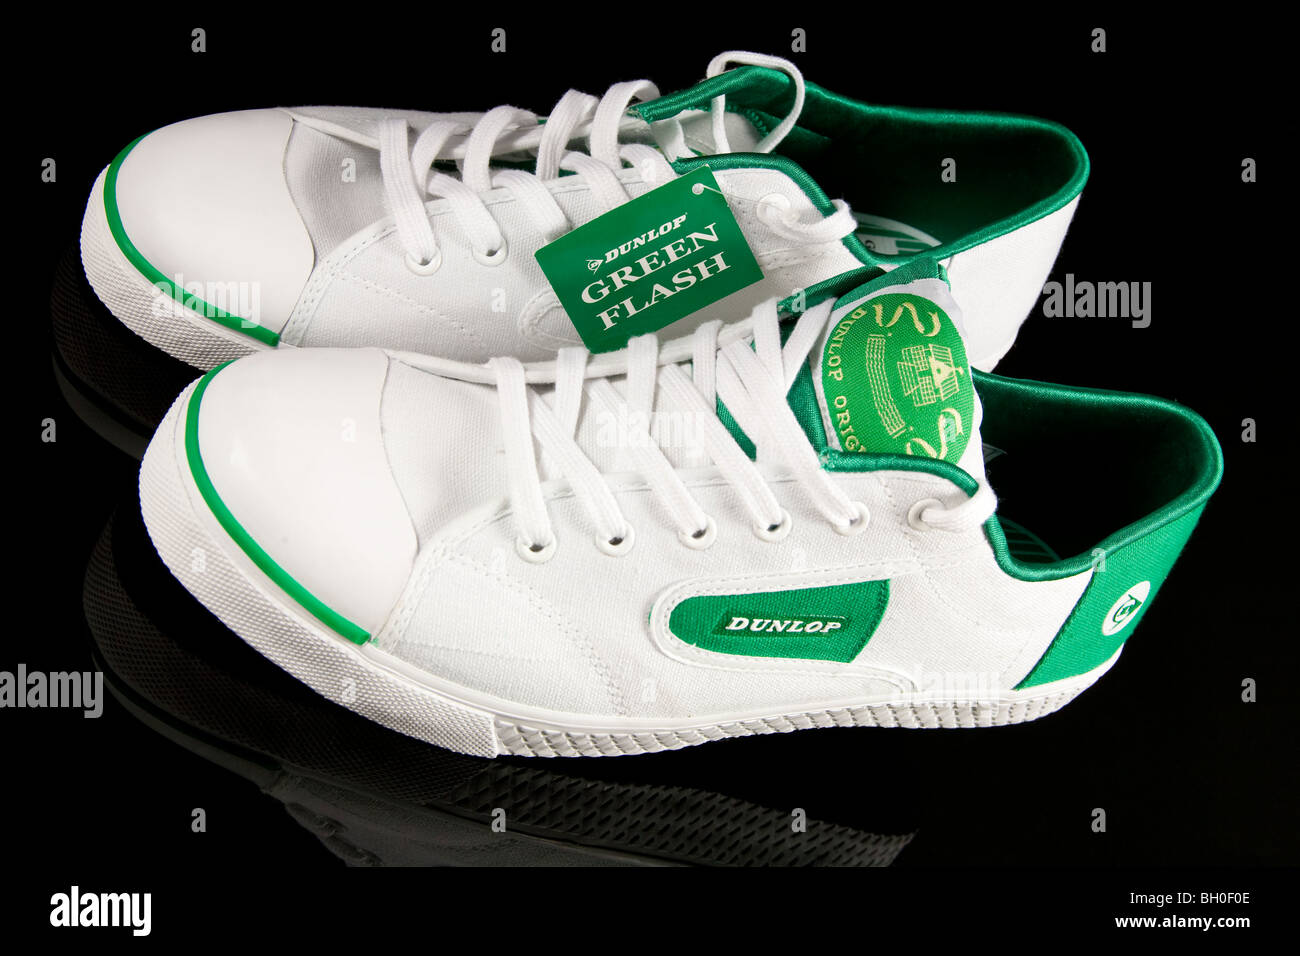 Green Tennis Shoes Stock Photos Green Tennis Shoes Stock Images